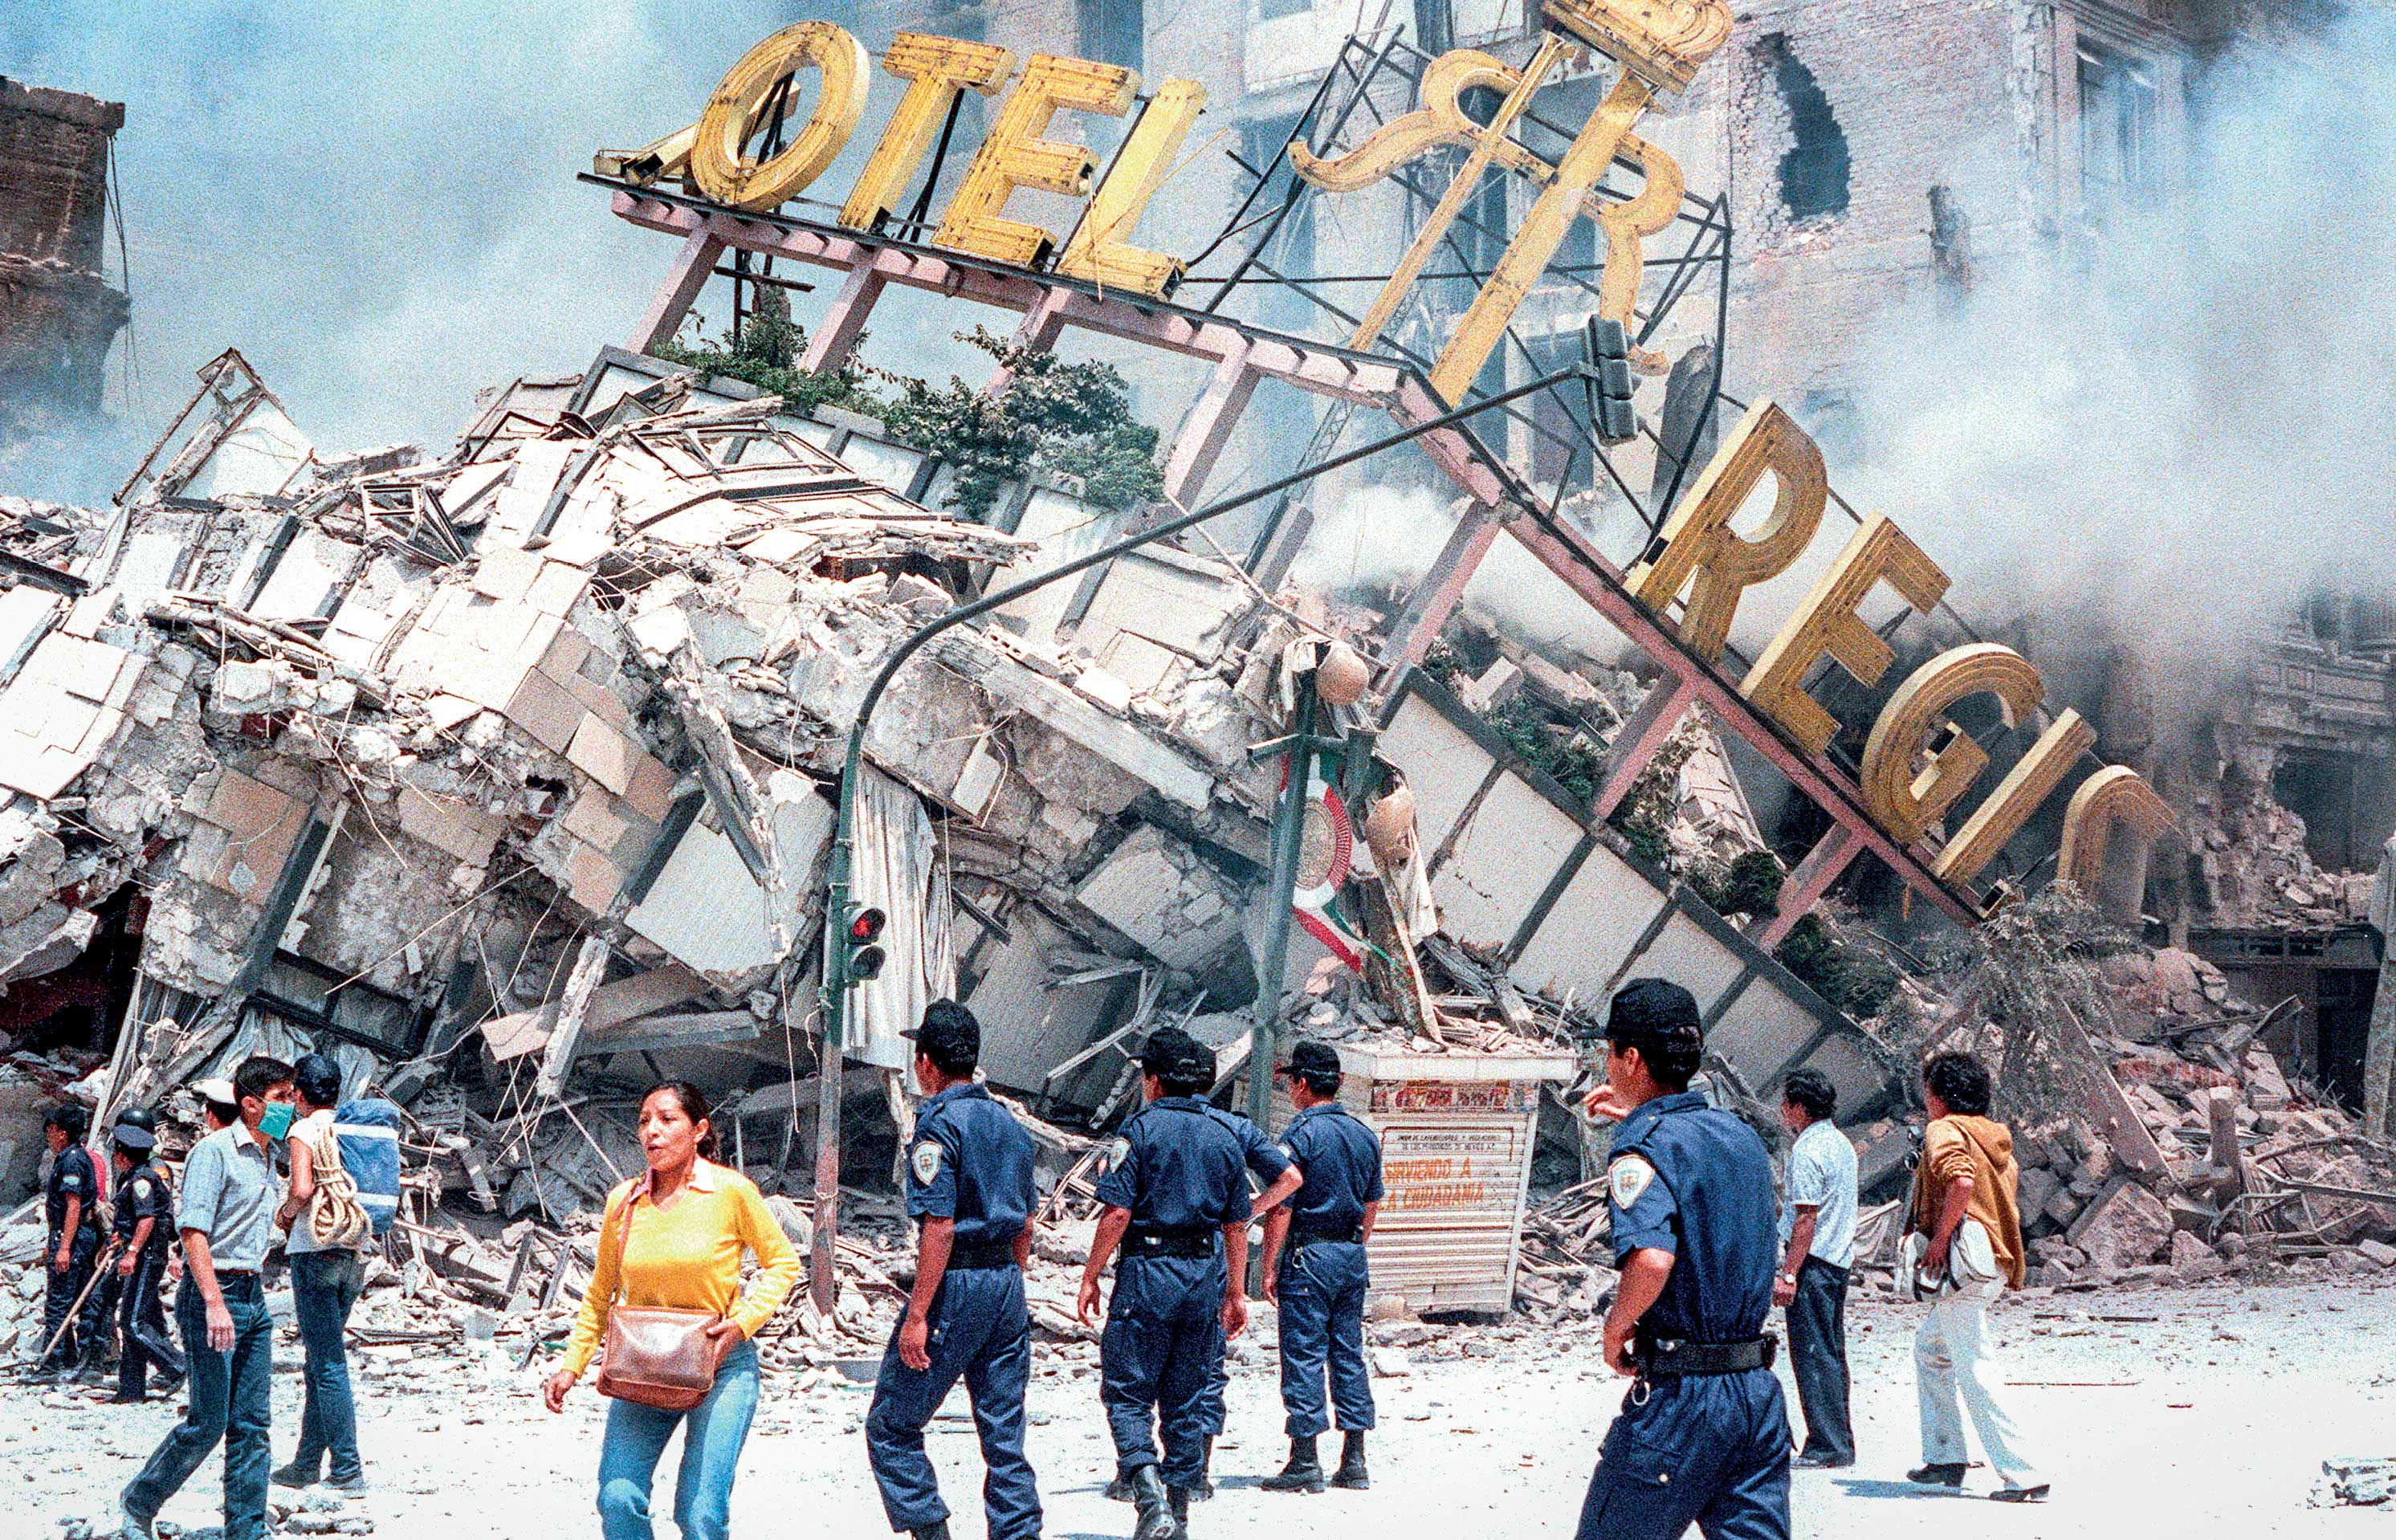 ... DUST TO DUST: The human cost of the 1985 earthquake is still a hotly debated topic in Mexico, with estimates ranging from 10,000 to as many as 45,000 people and 250,000 having lost their homes